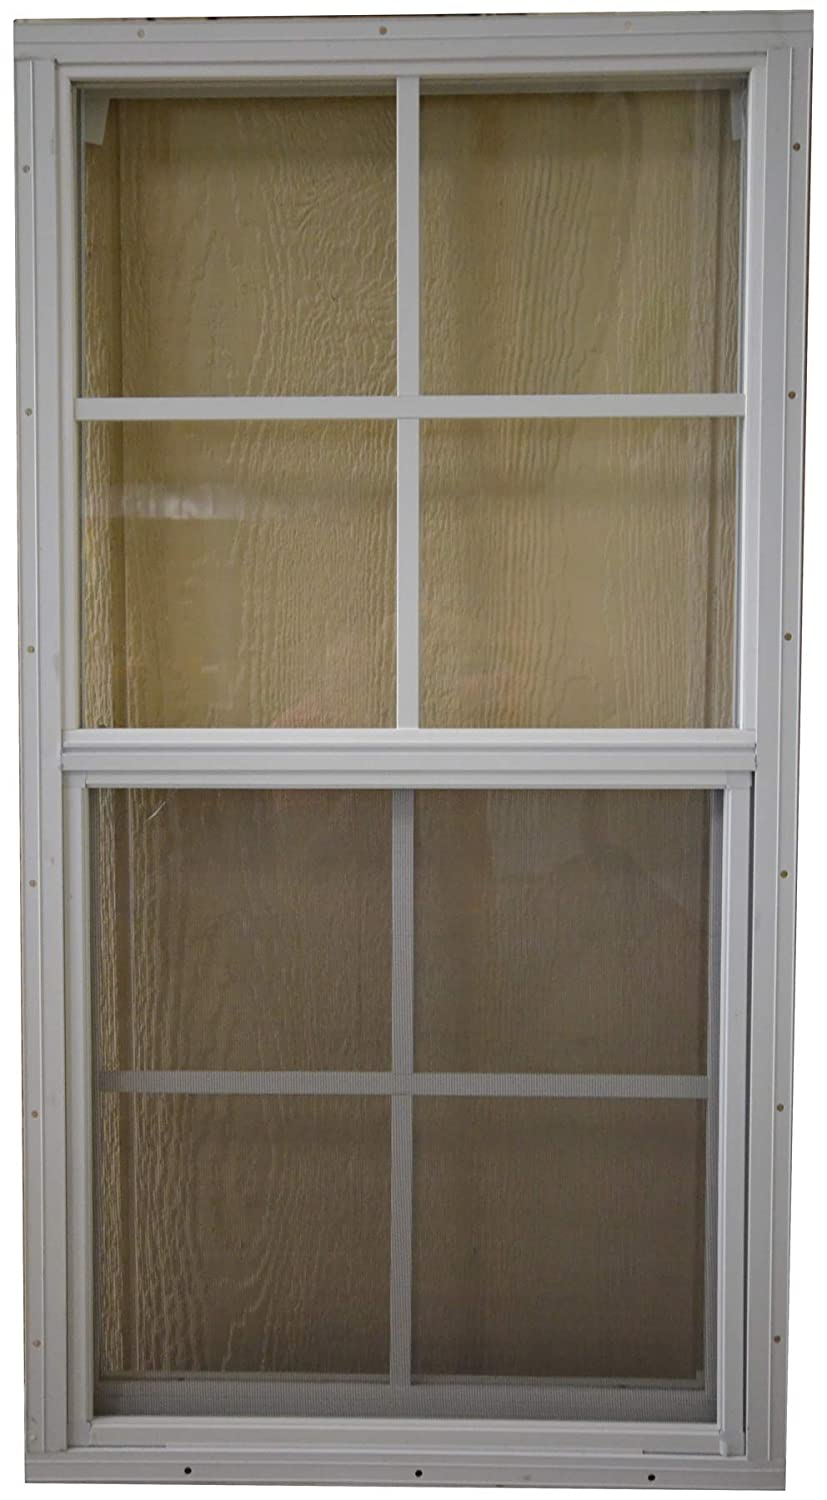 SHED PLAYHOUSE WINDOW-18X36-WHITE-FLUSH OUTDOOR PLAY AND STORAGE